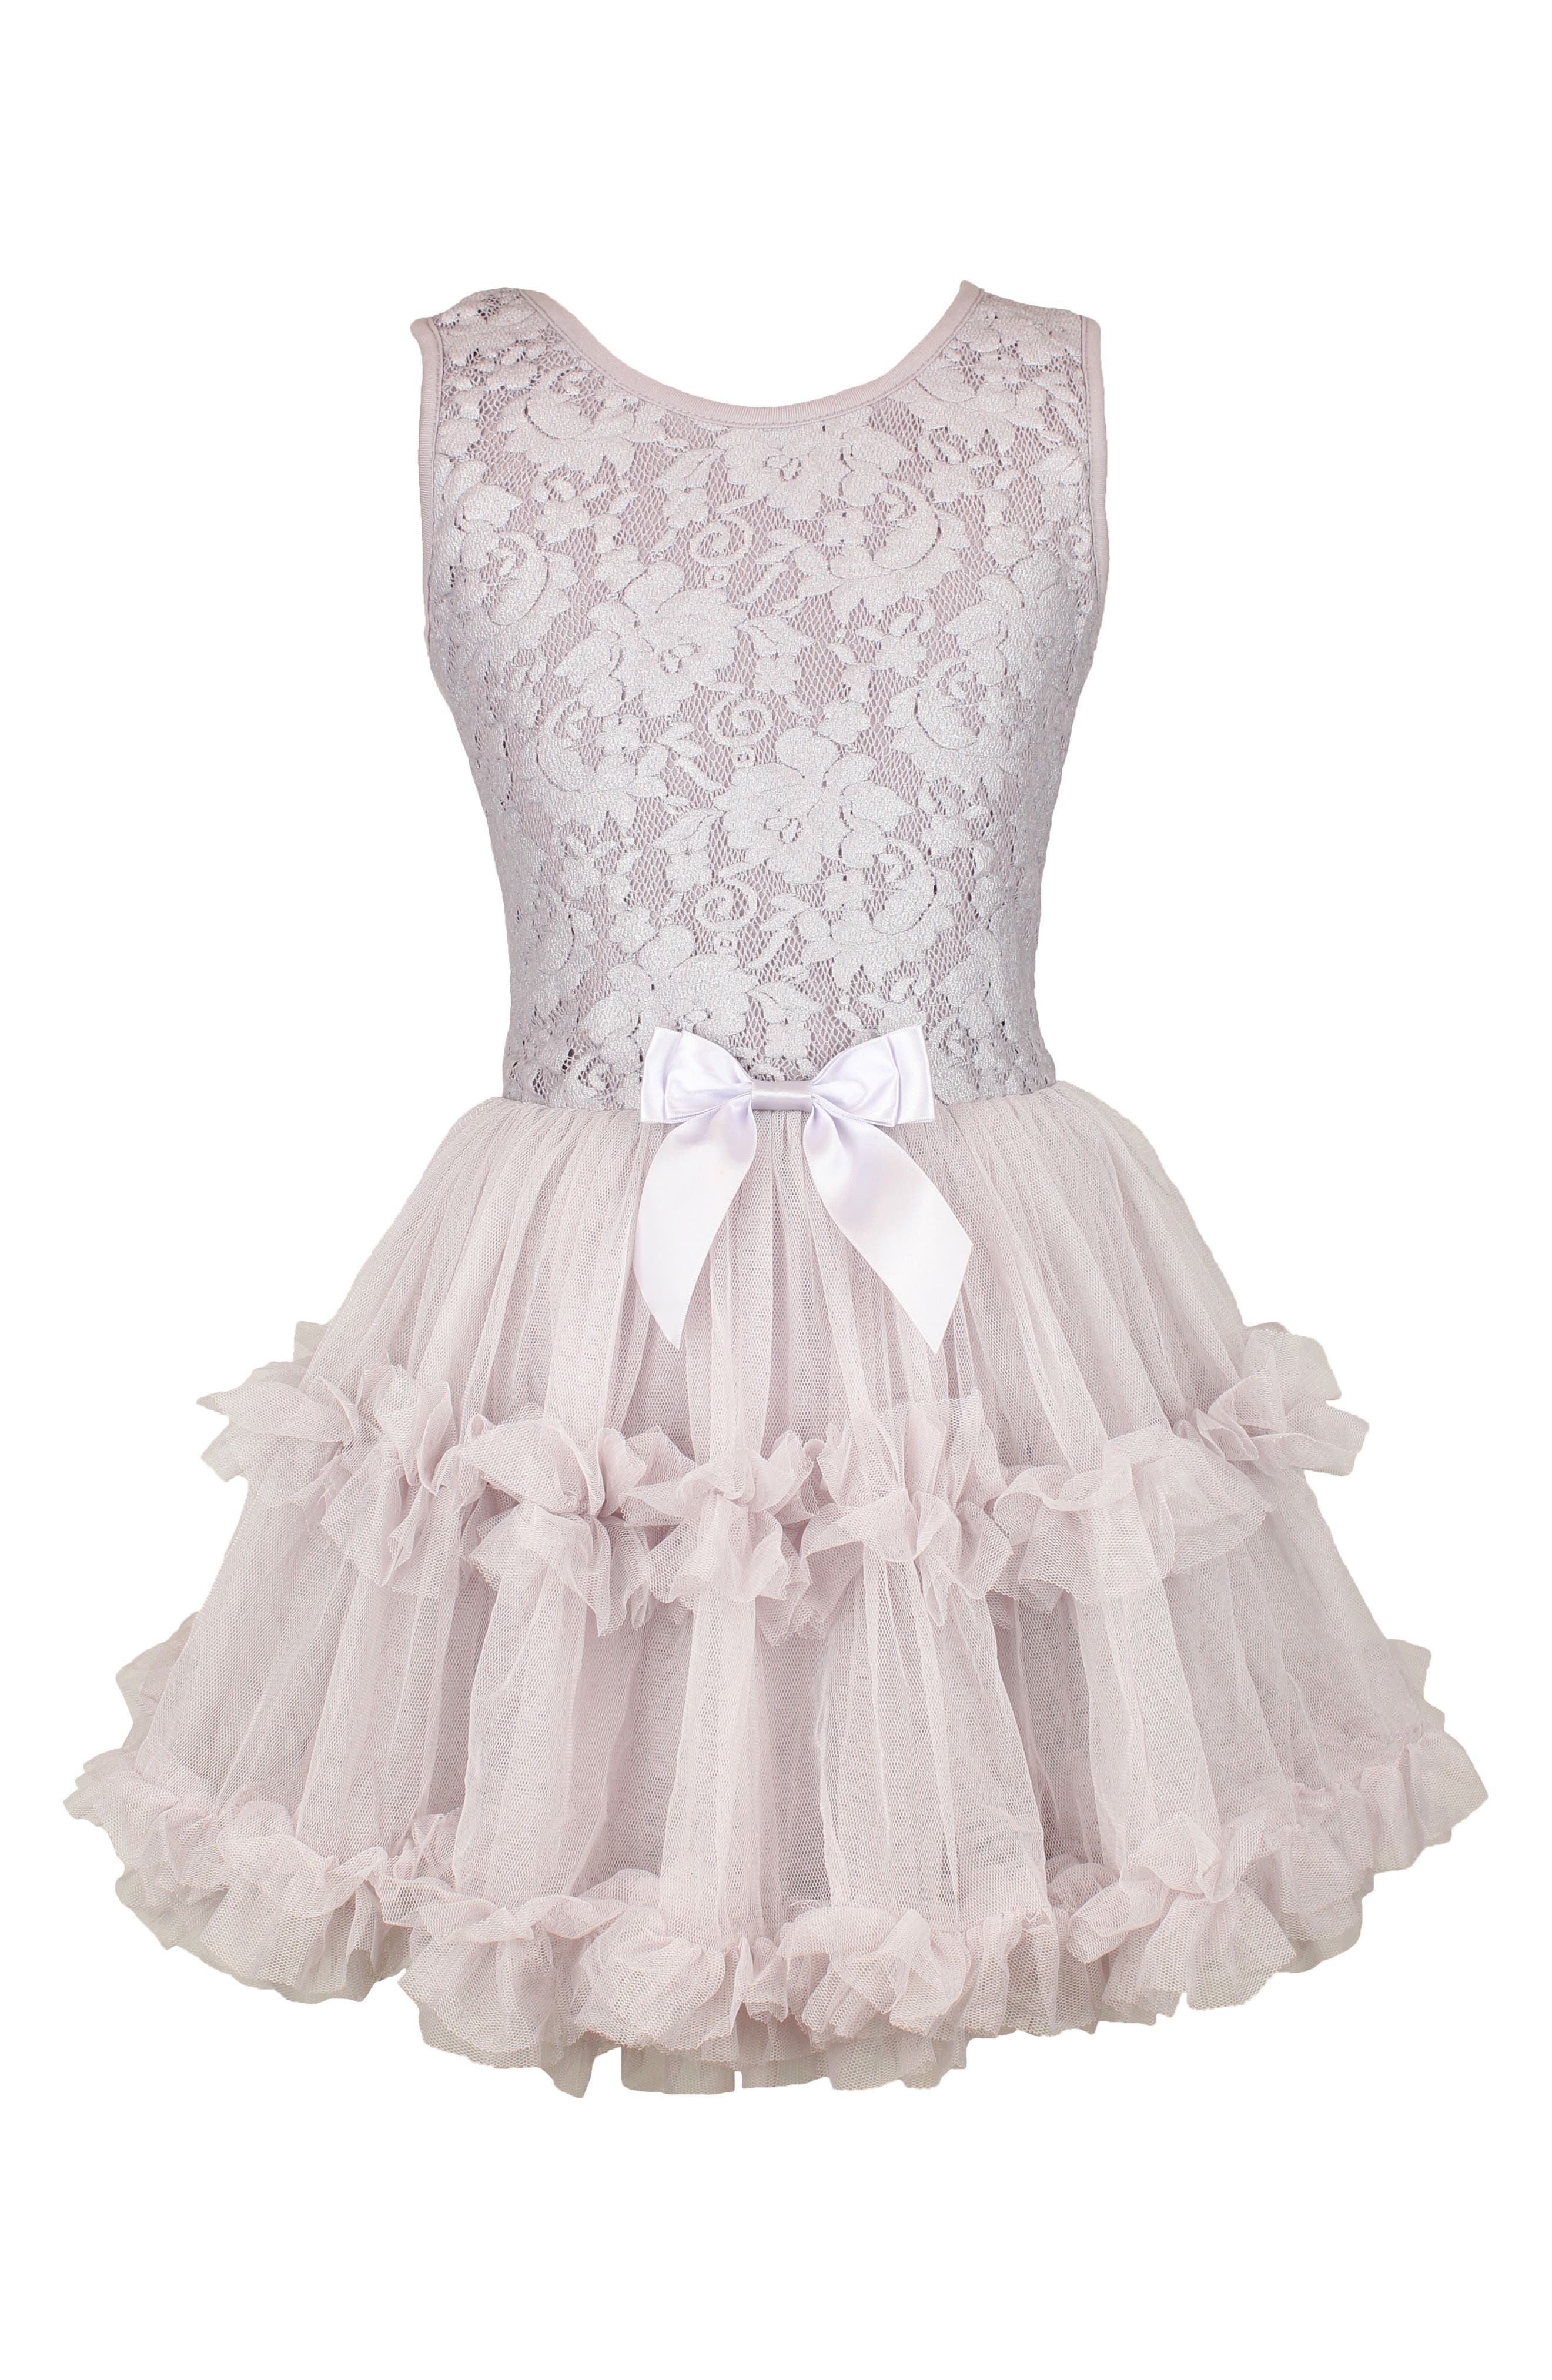 Popatu Lace & Tulle Sleeveless Dress (Little Girls & Big Girls)